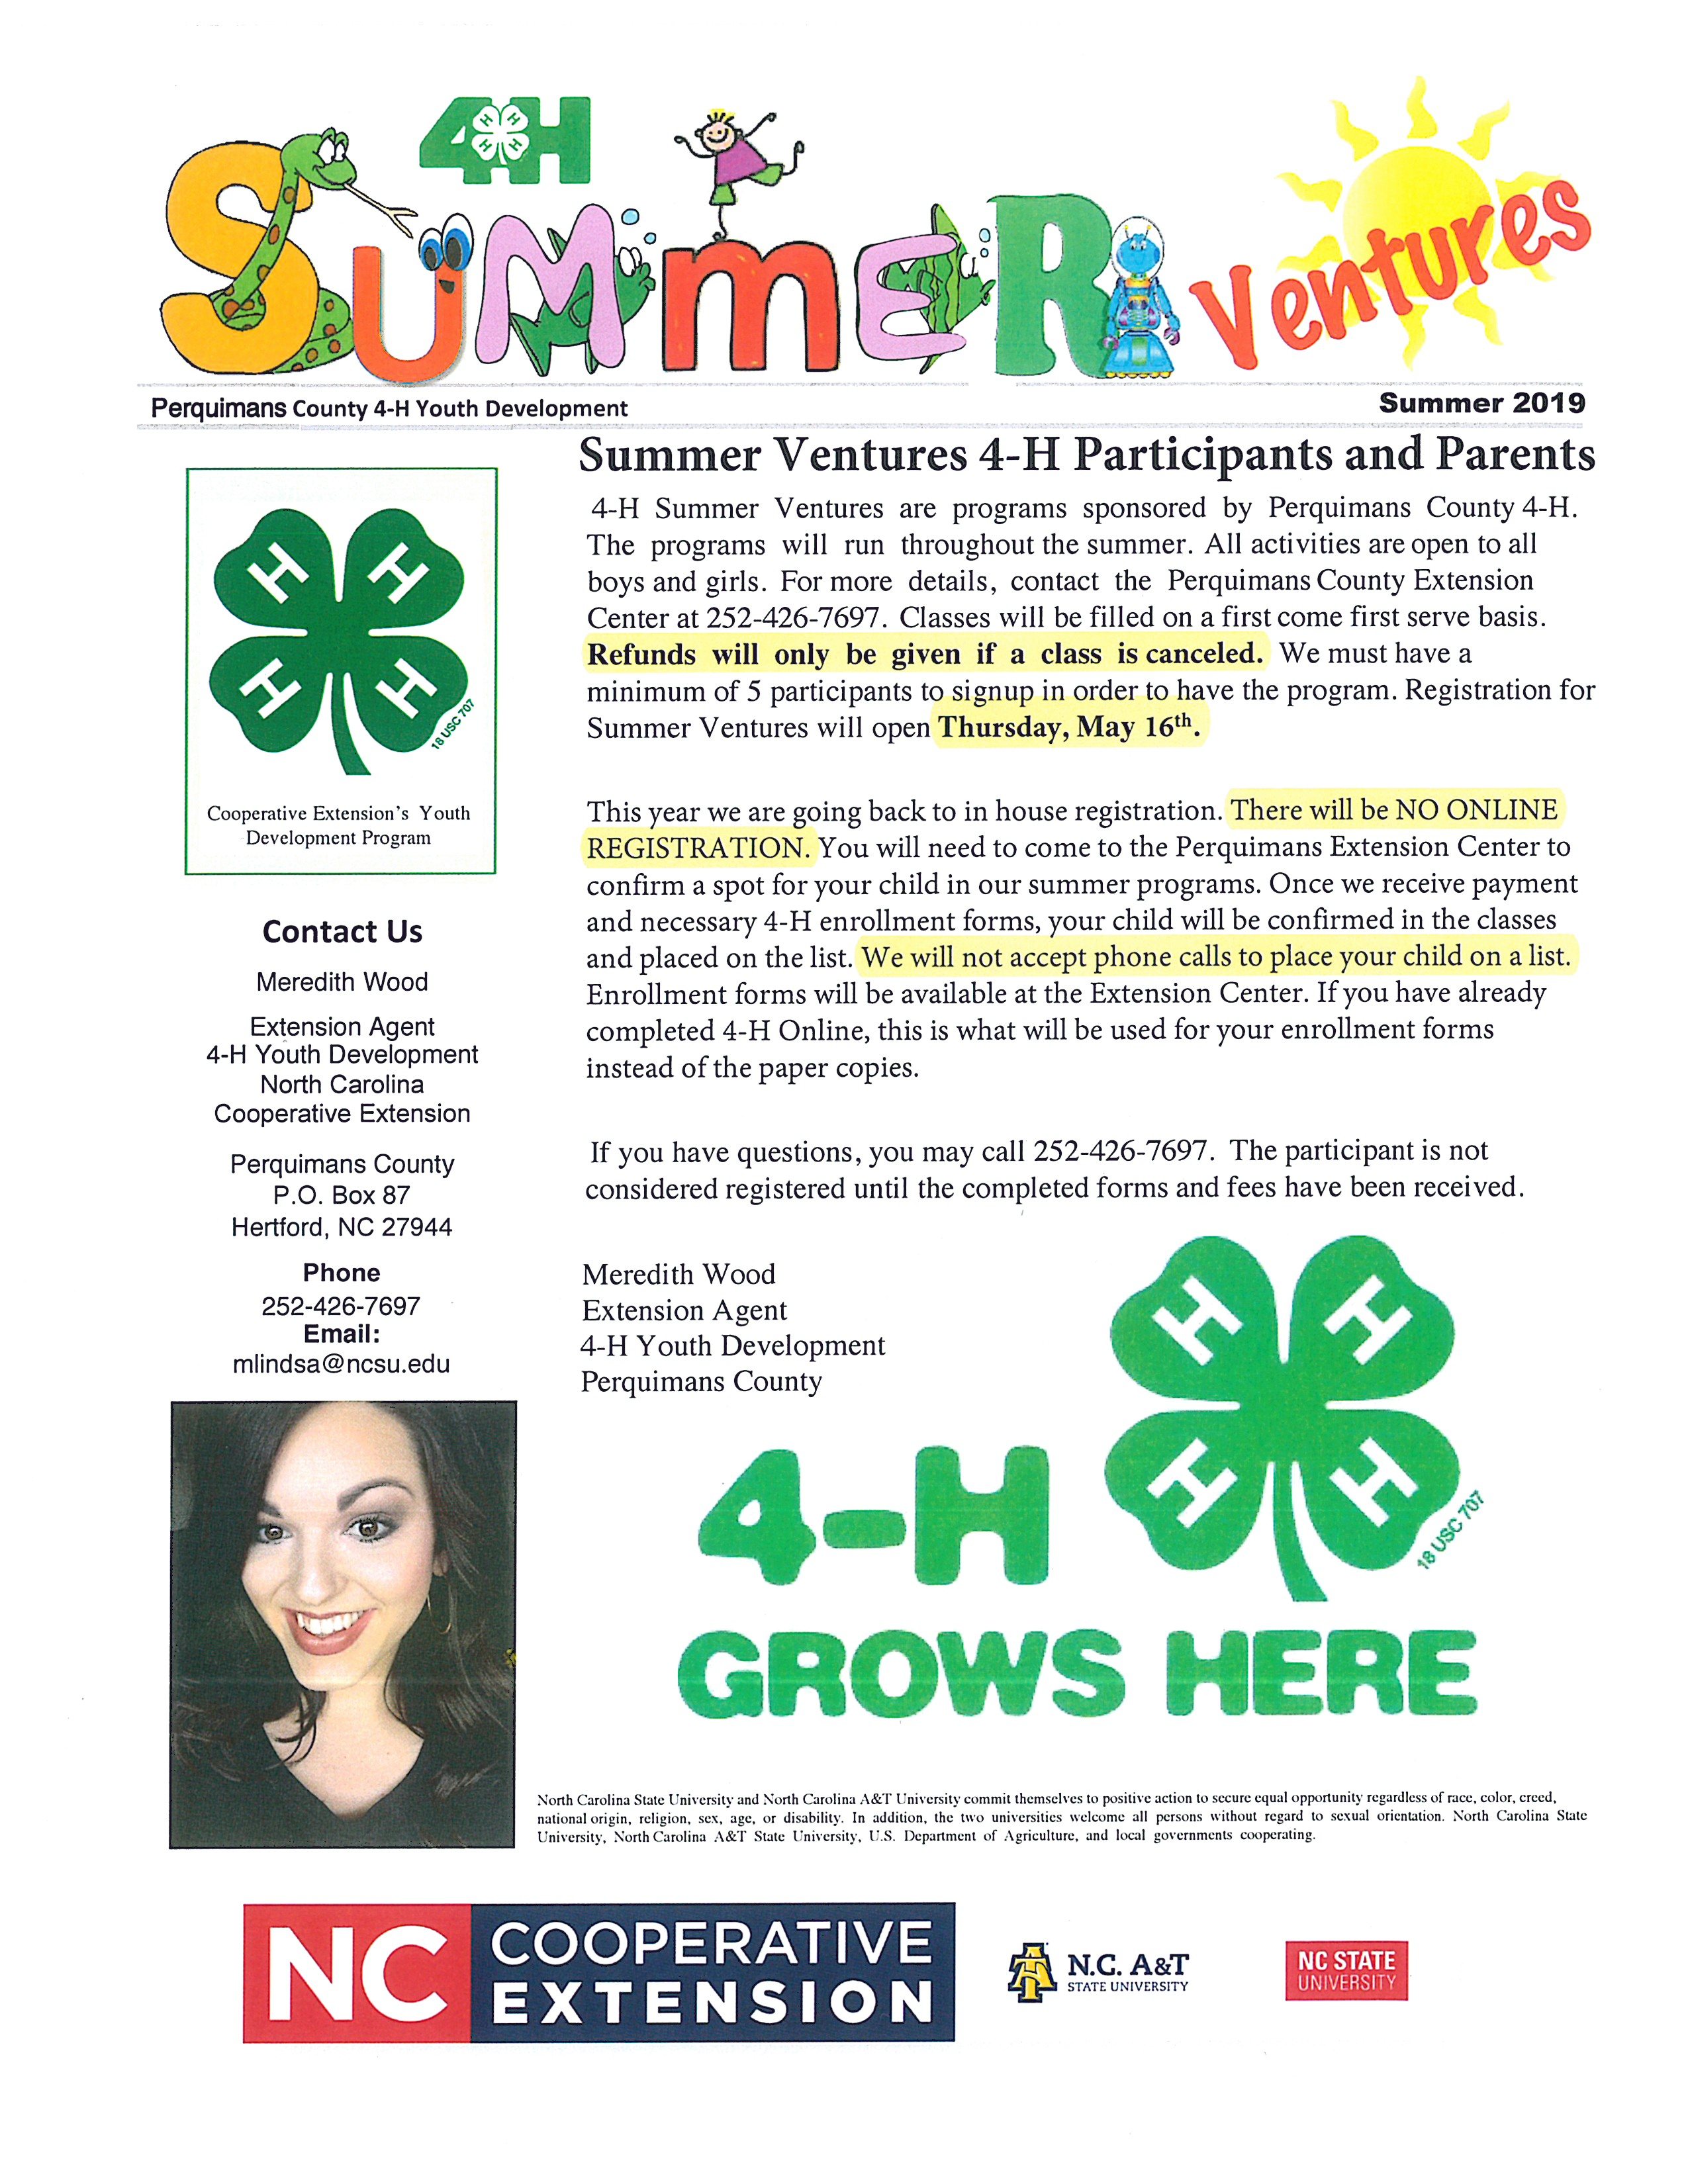 Summer Ventures page 1 image